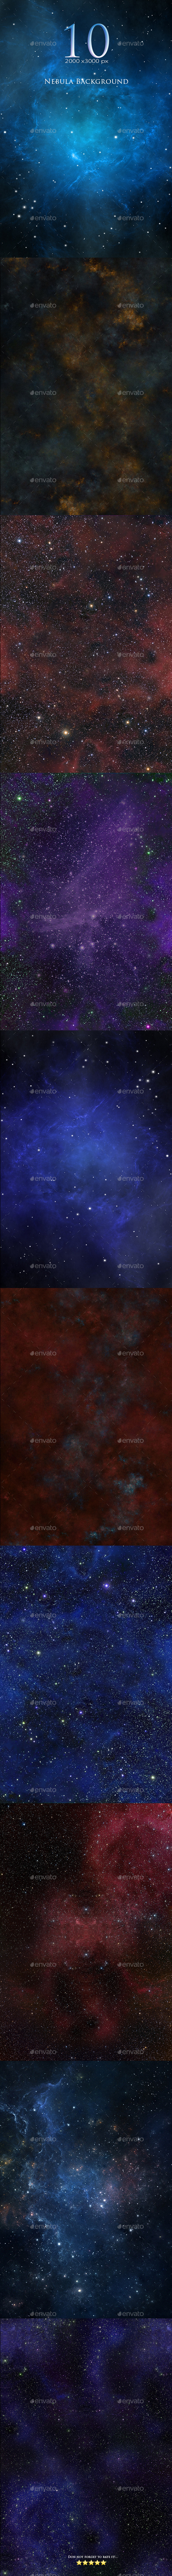 GraphicRiver 10 Nebula Backgrounds 9719515